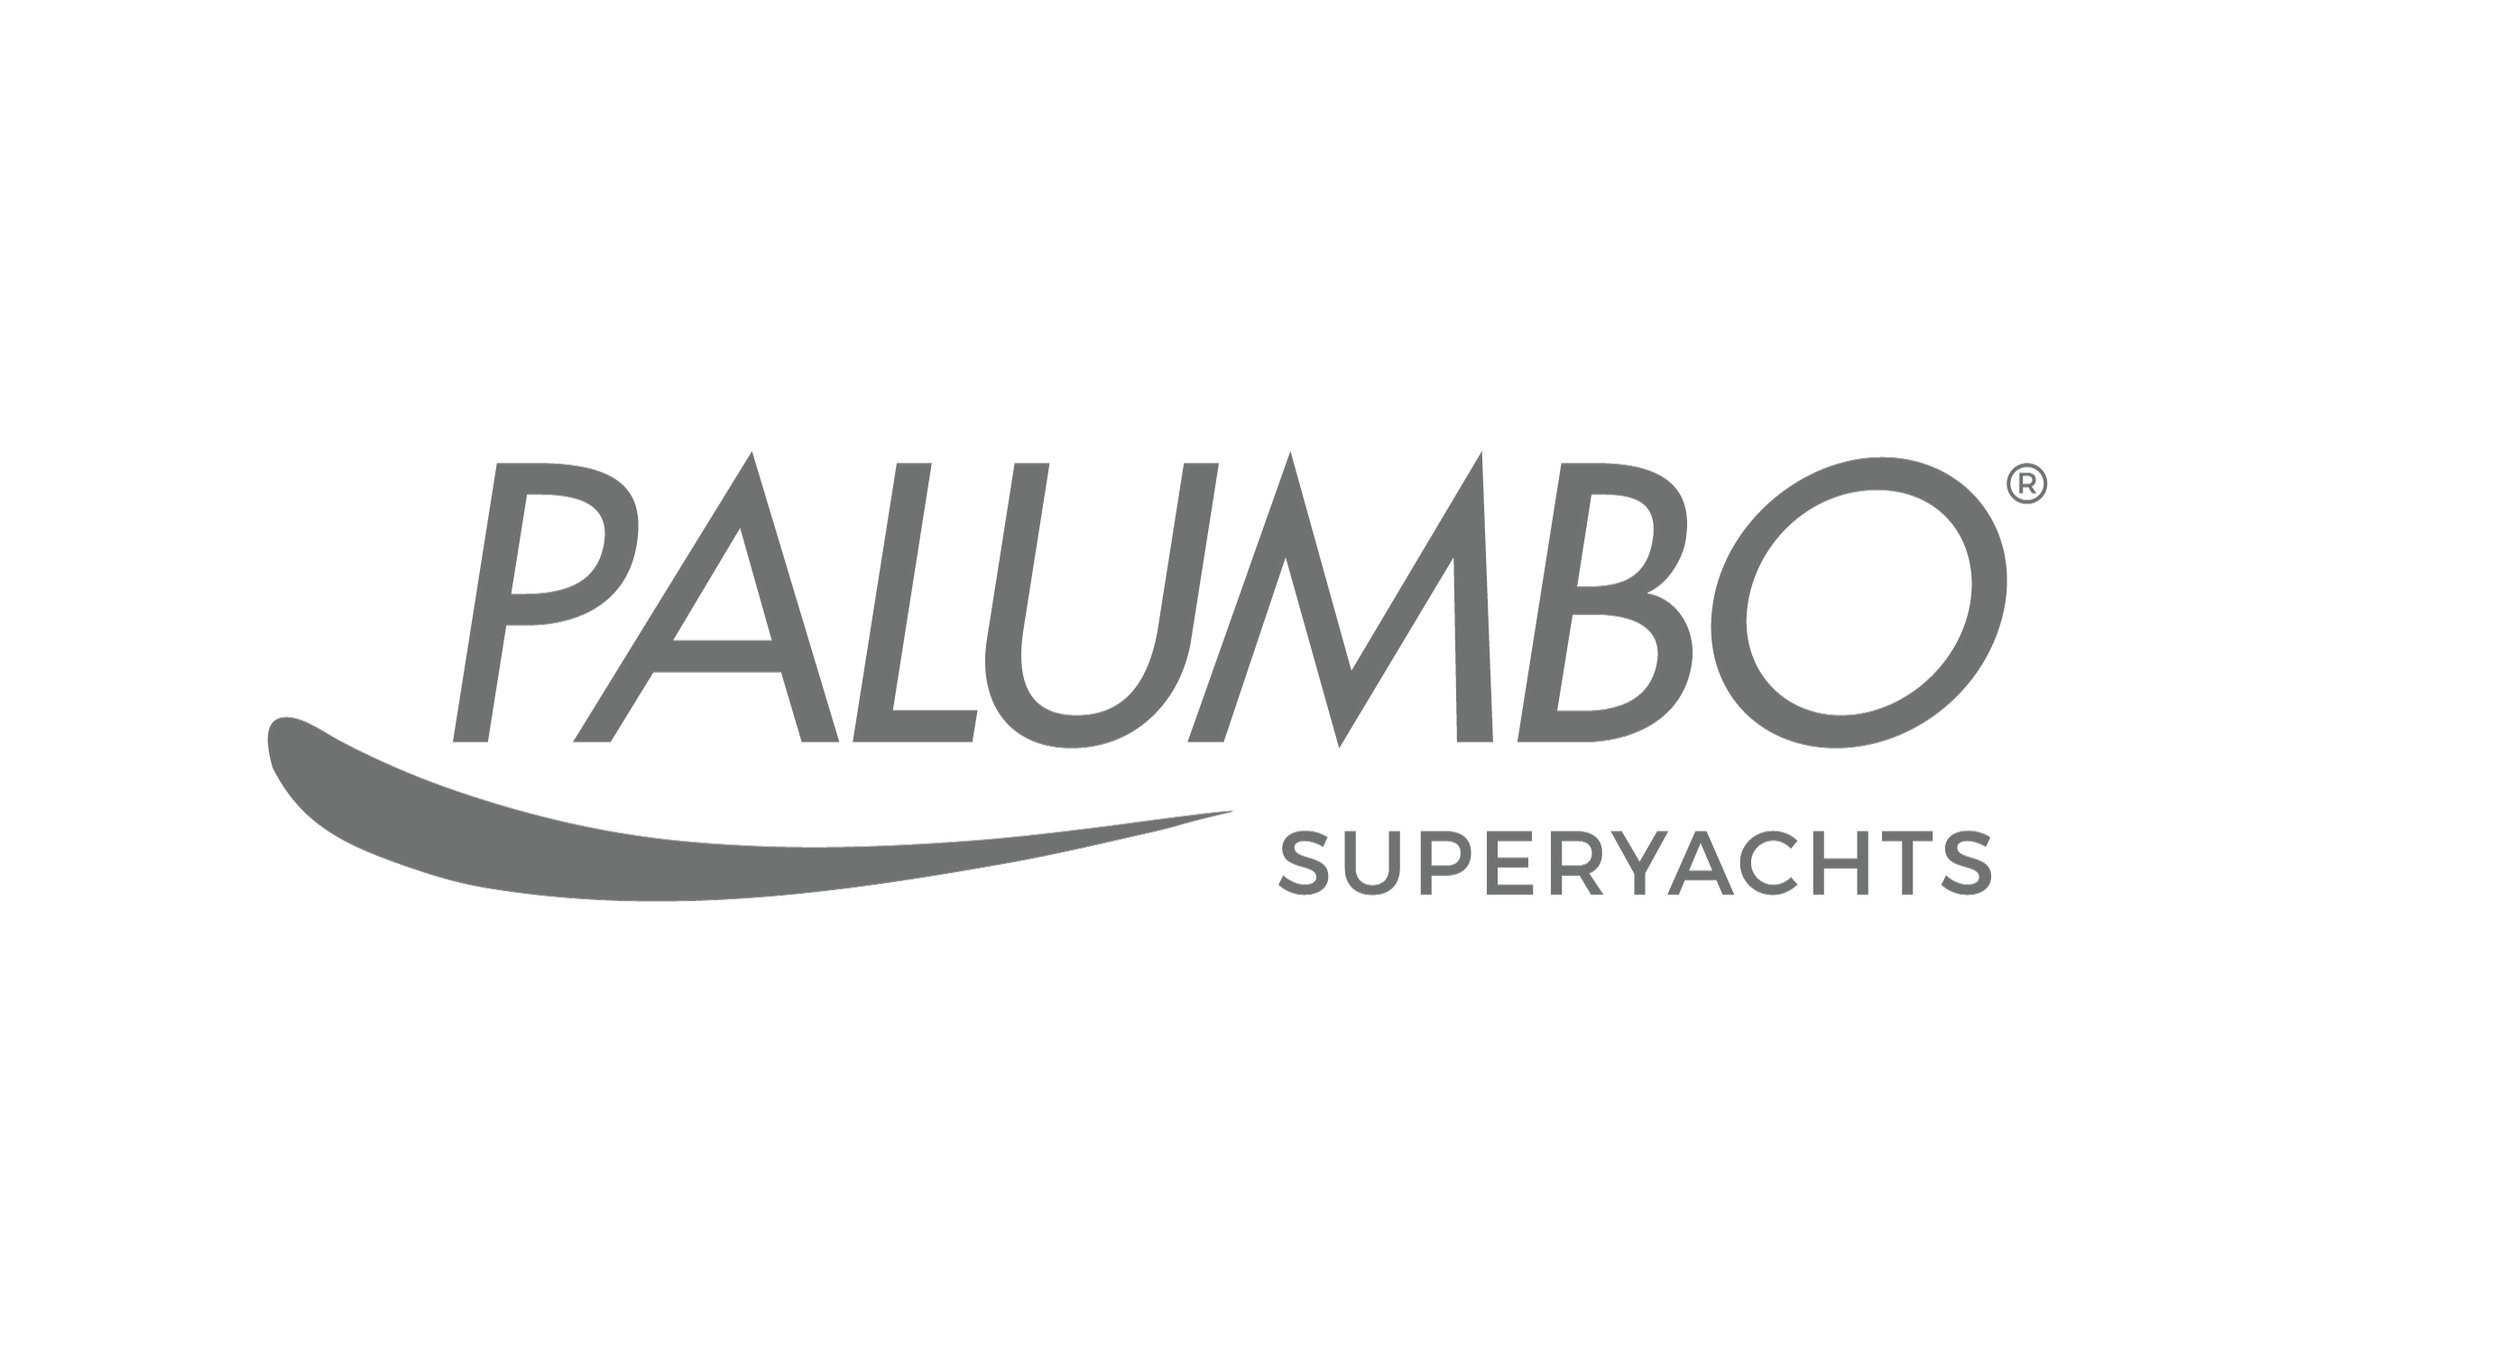 palumbo_2018A_superyachts_color_424_U500.jpg